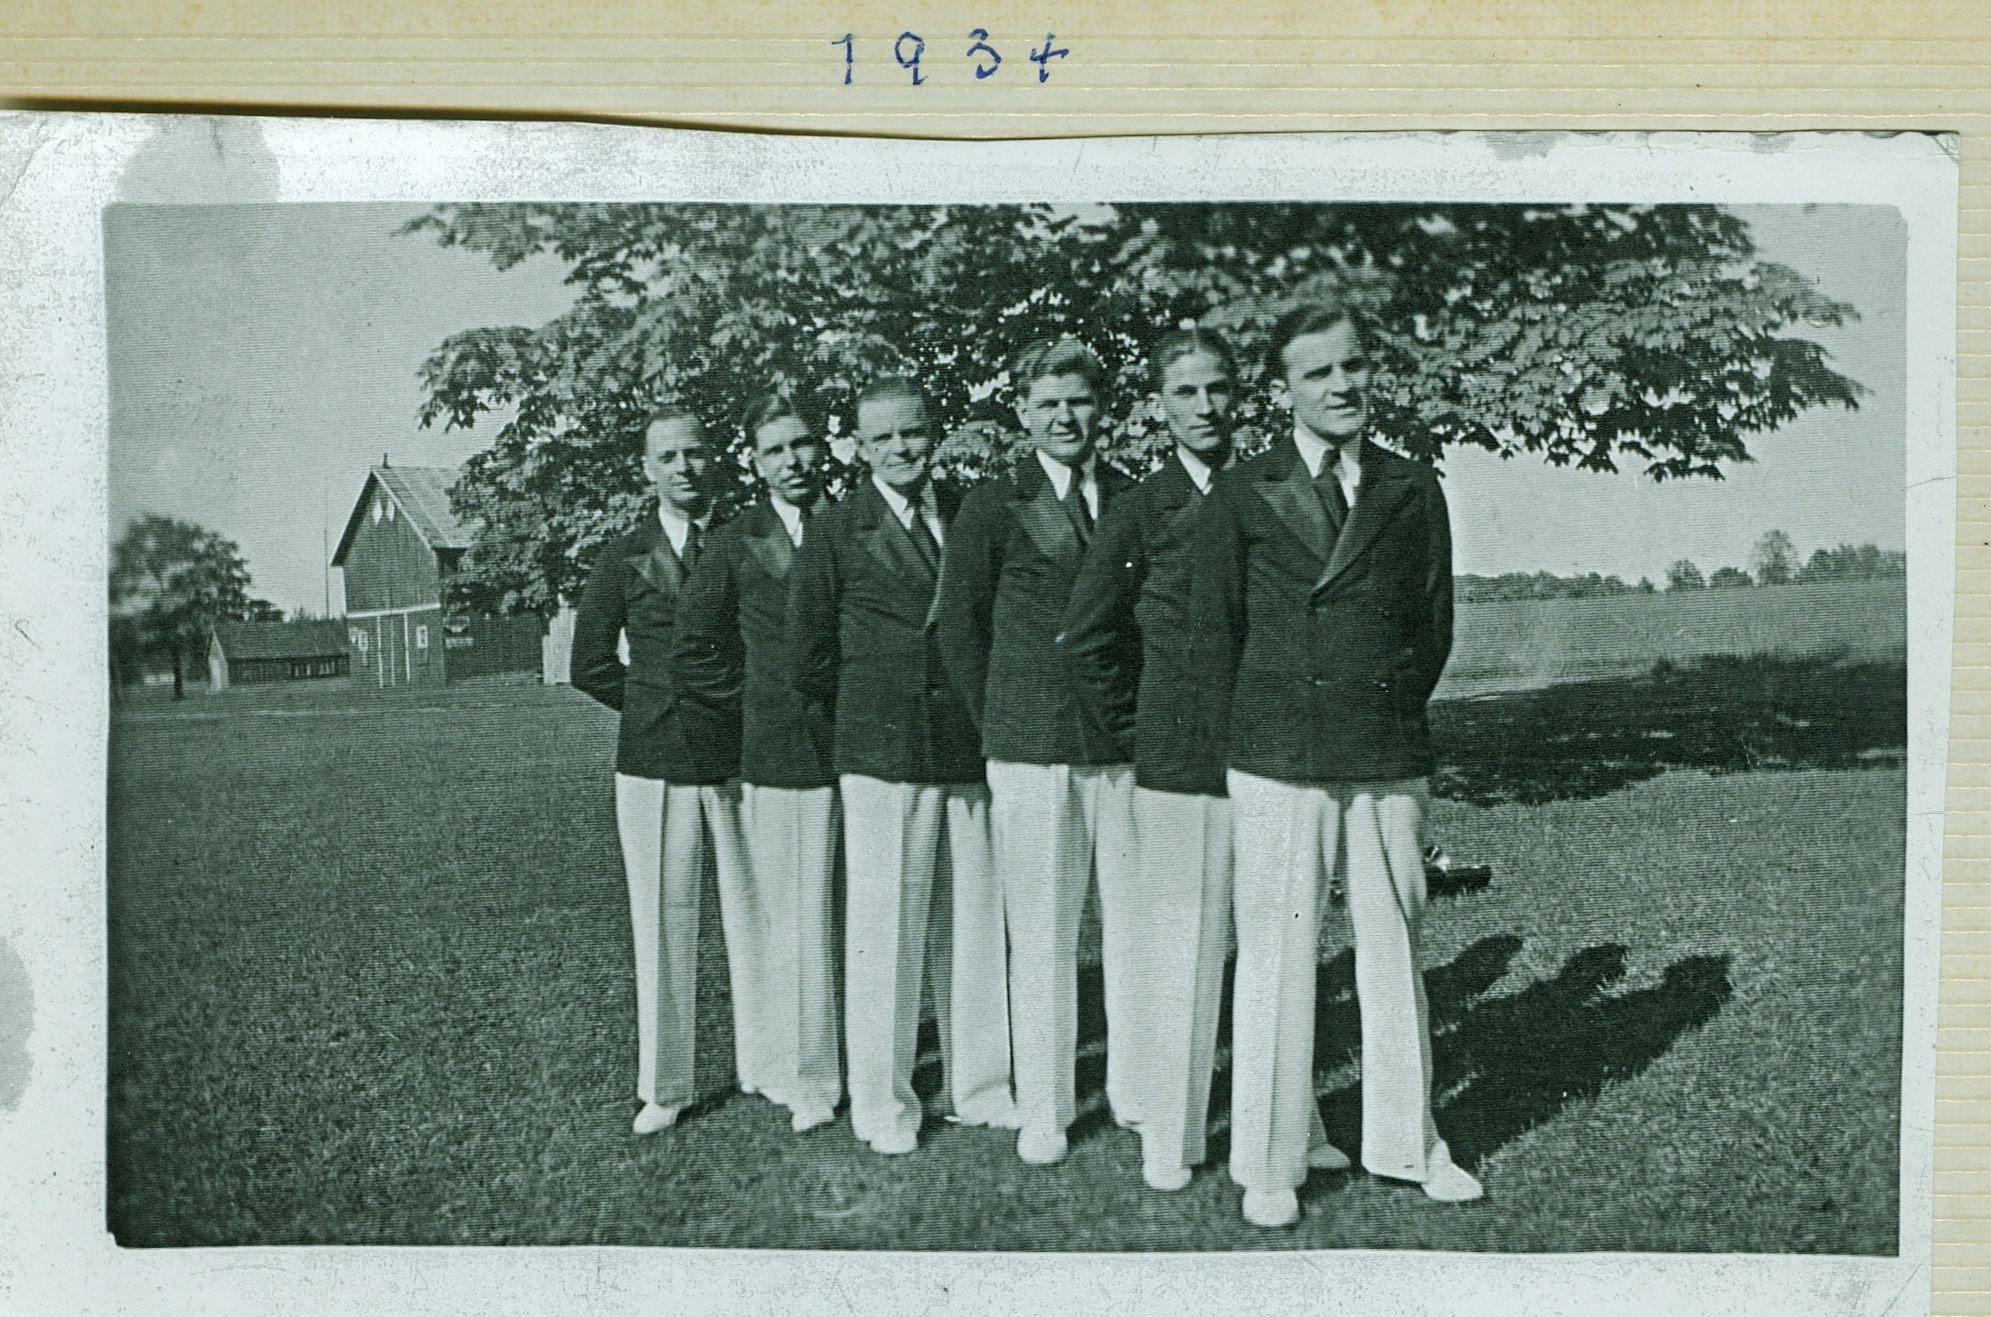 The Aces Band 1931 to 1939 Here: 1934 Fred Doris, jack grant, Doug Hutchinson, Grey Kemp Roy Spalding Larry Brown (names seem to differ from photo below)